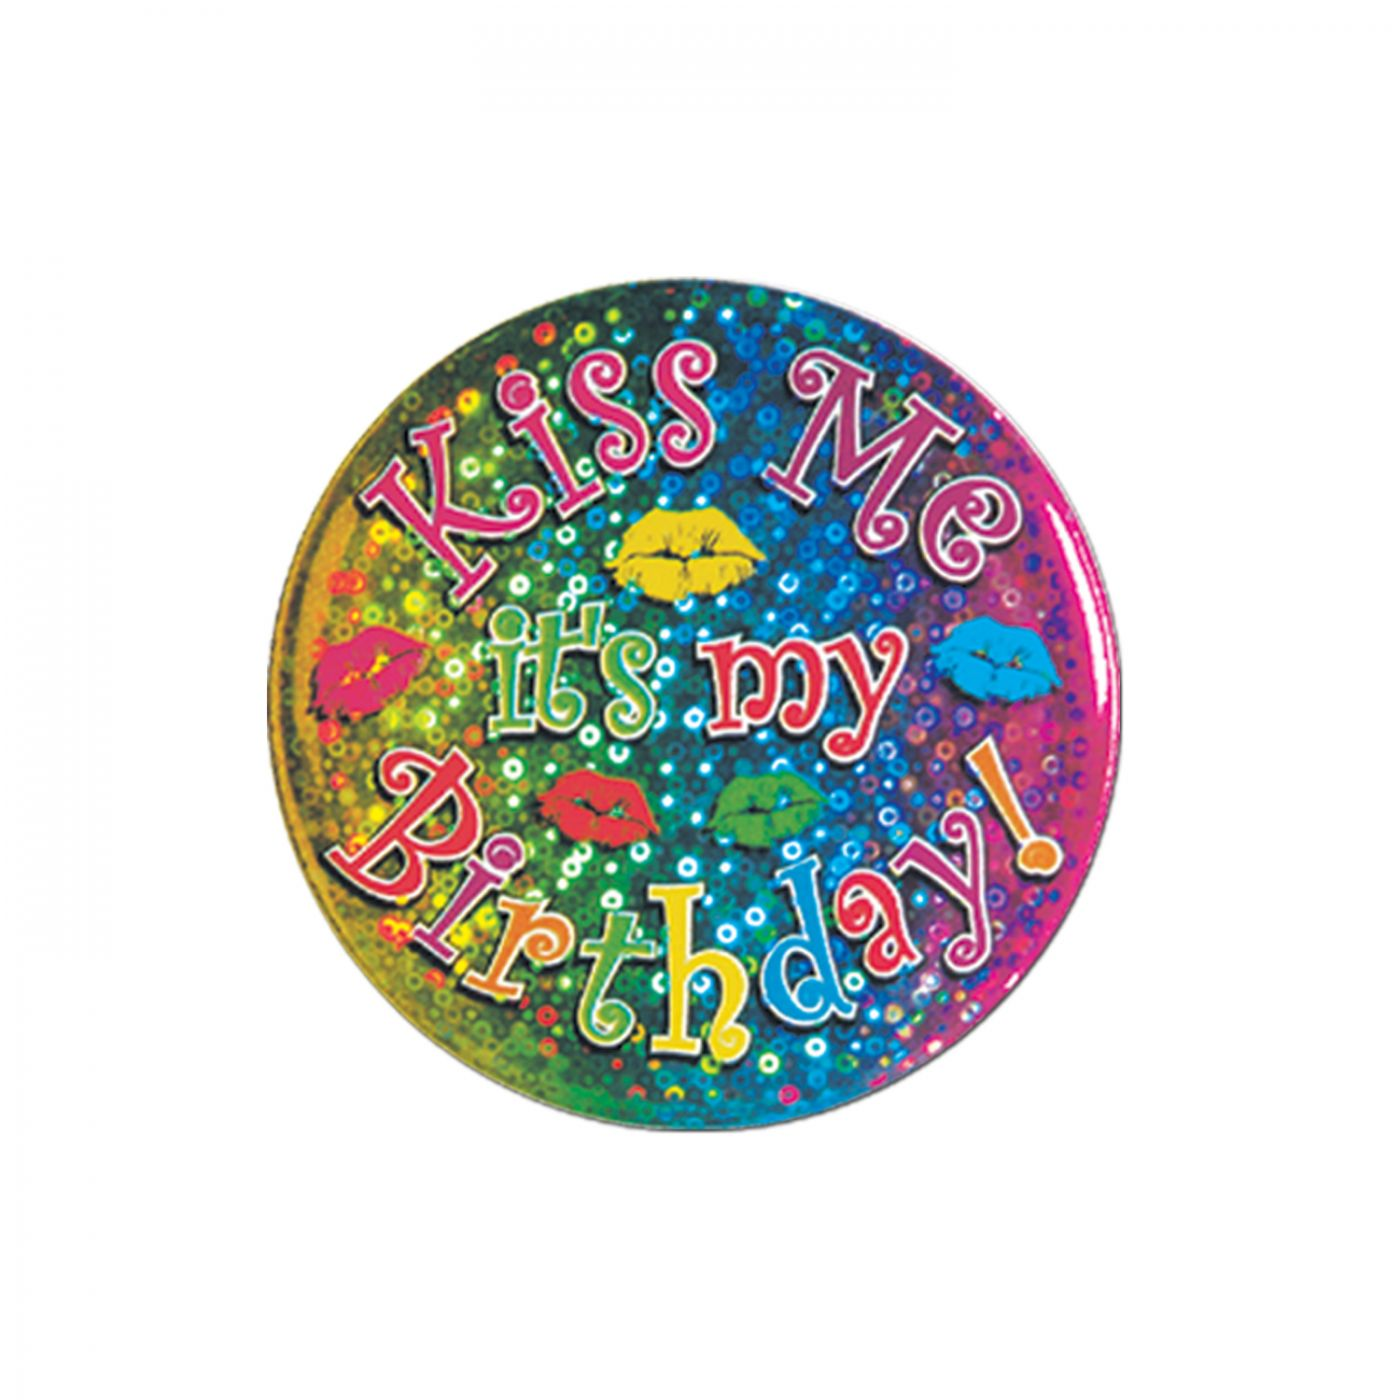 Kiss Me It's My Birthday! Button image